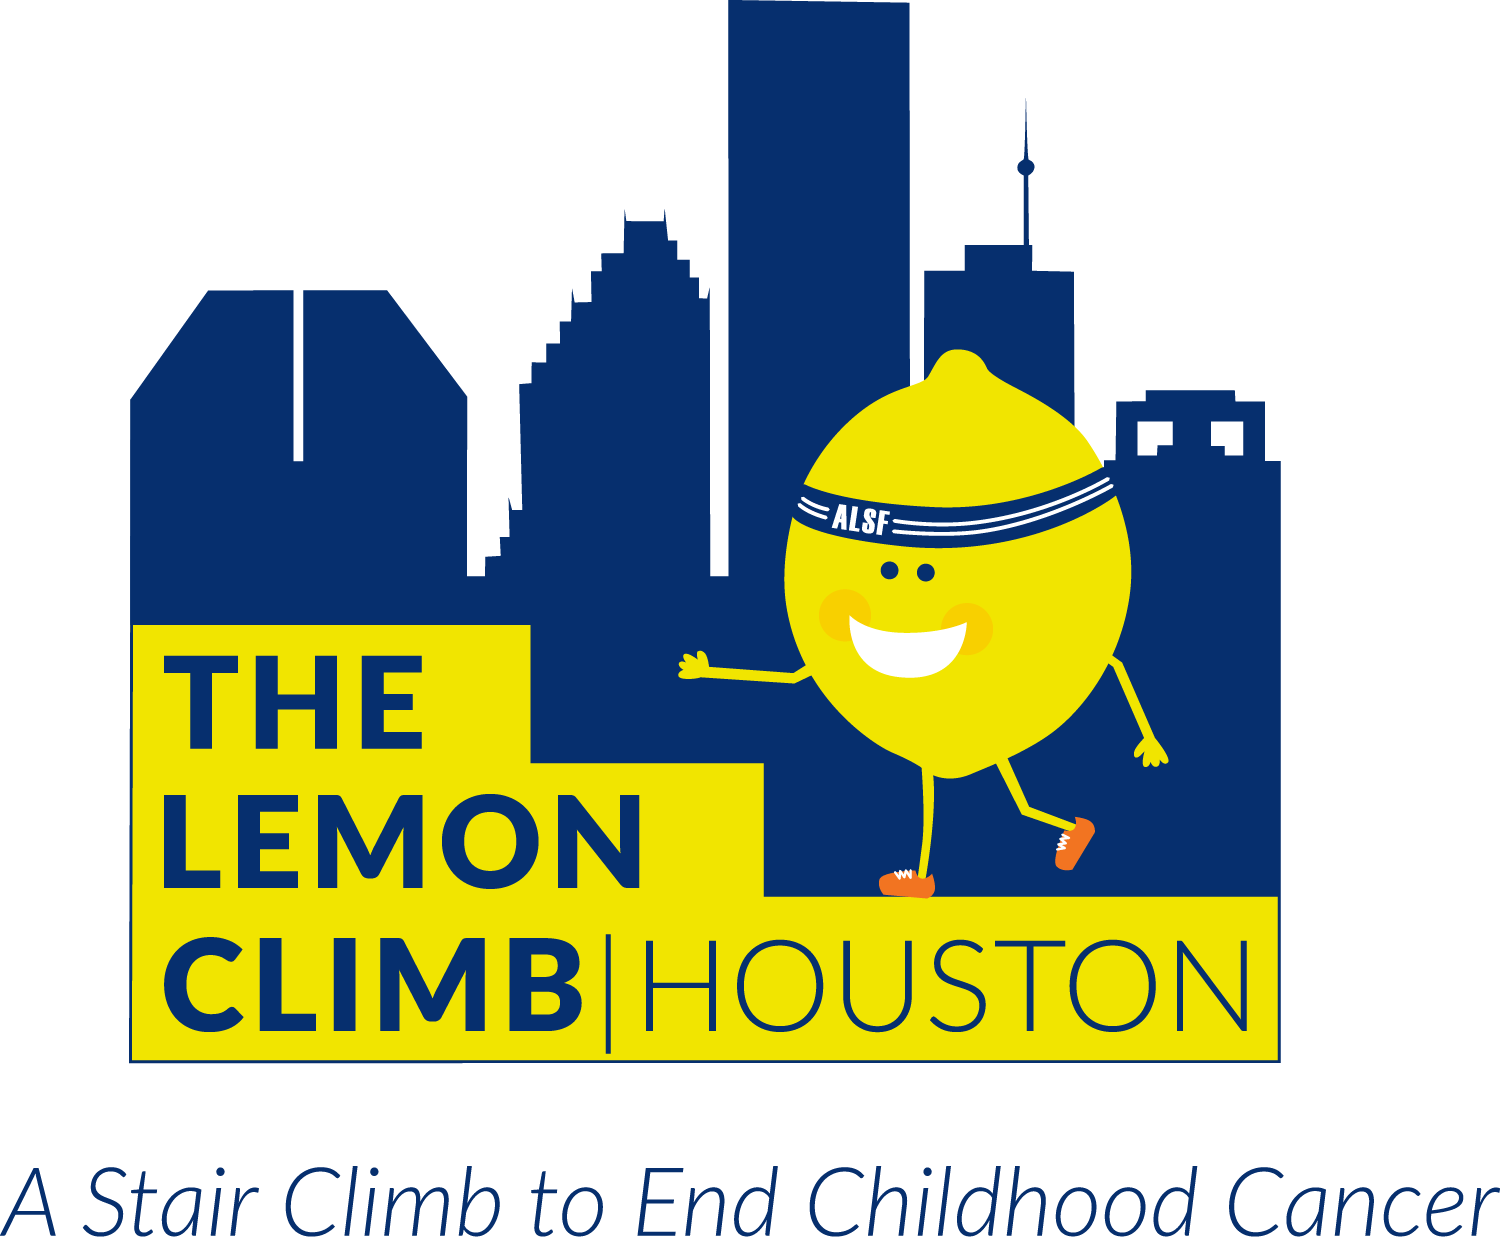 Lemon Climb Houston